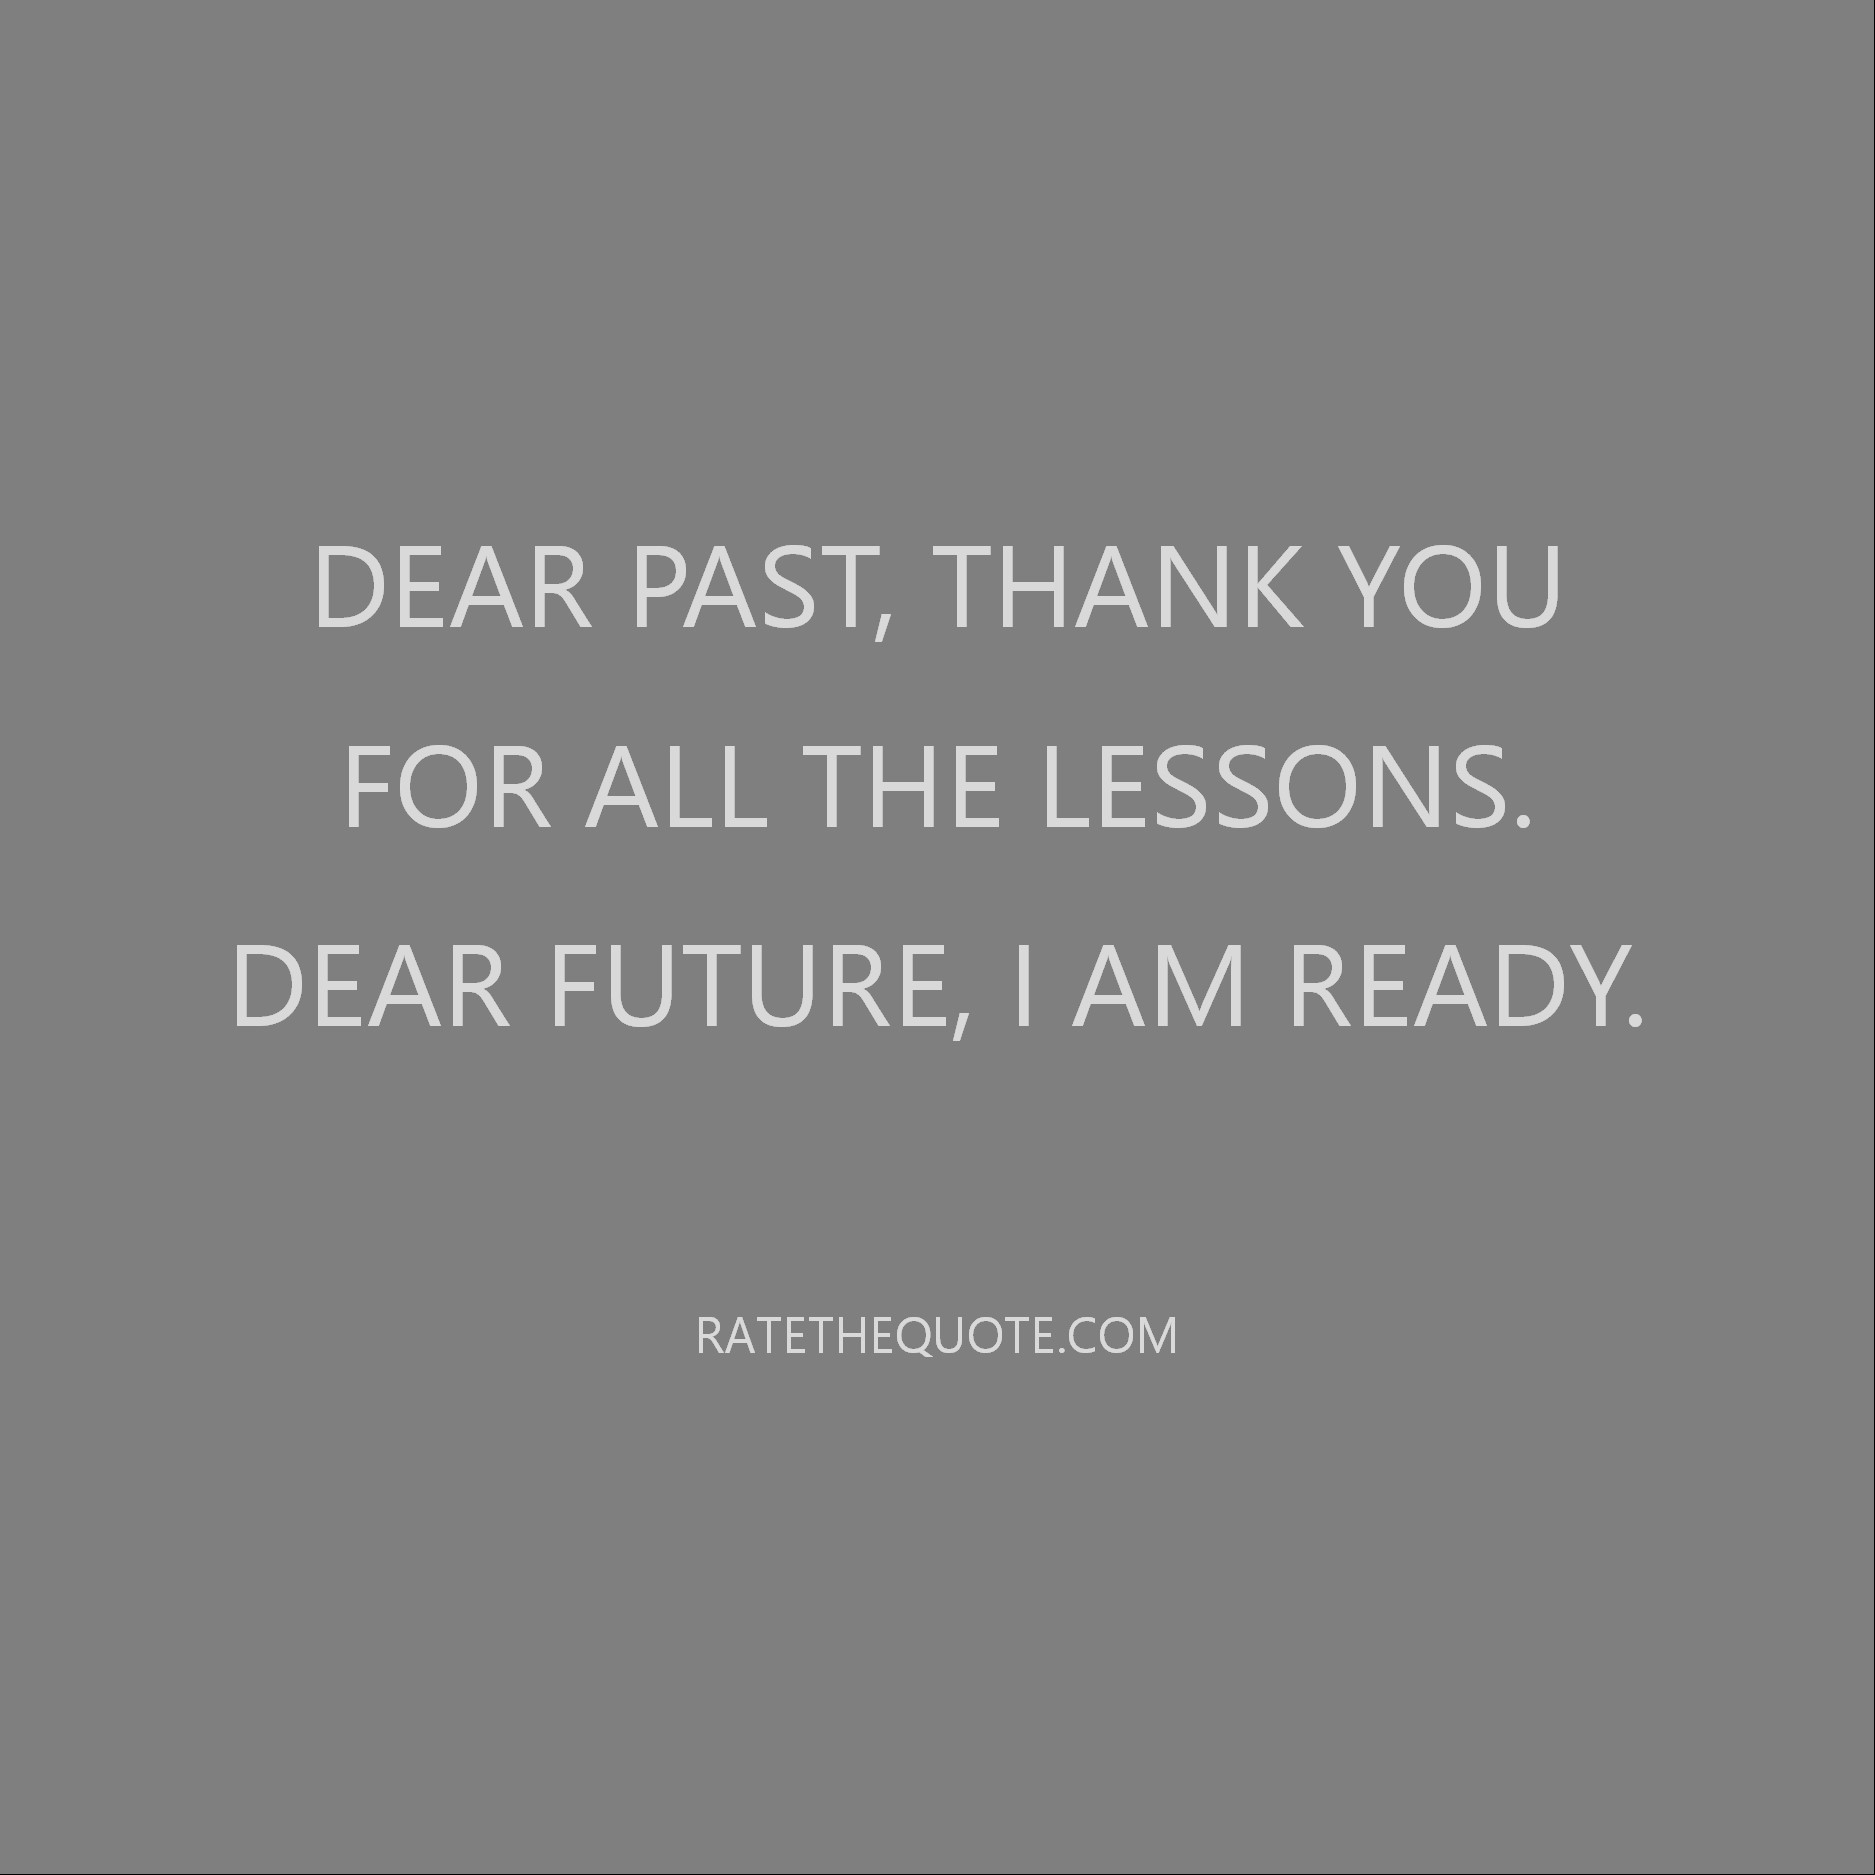 Dear past, thank you for all the lessons. Dear future, I am ready.